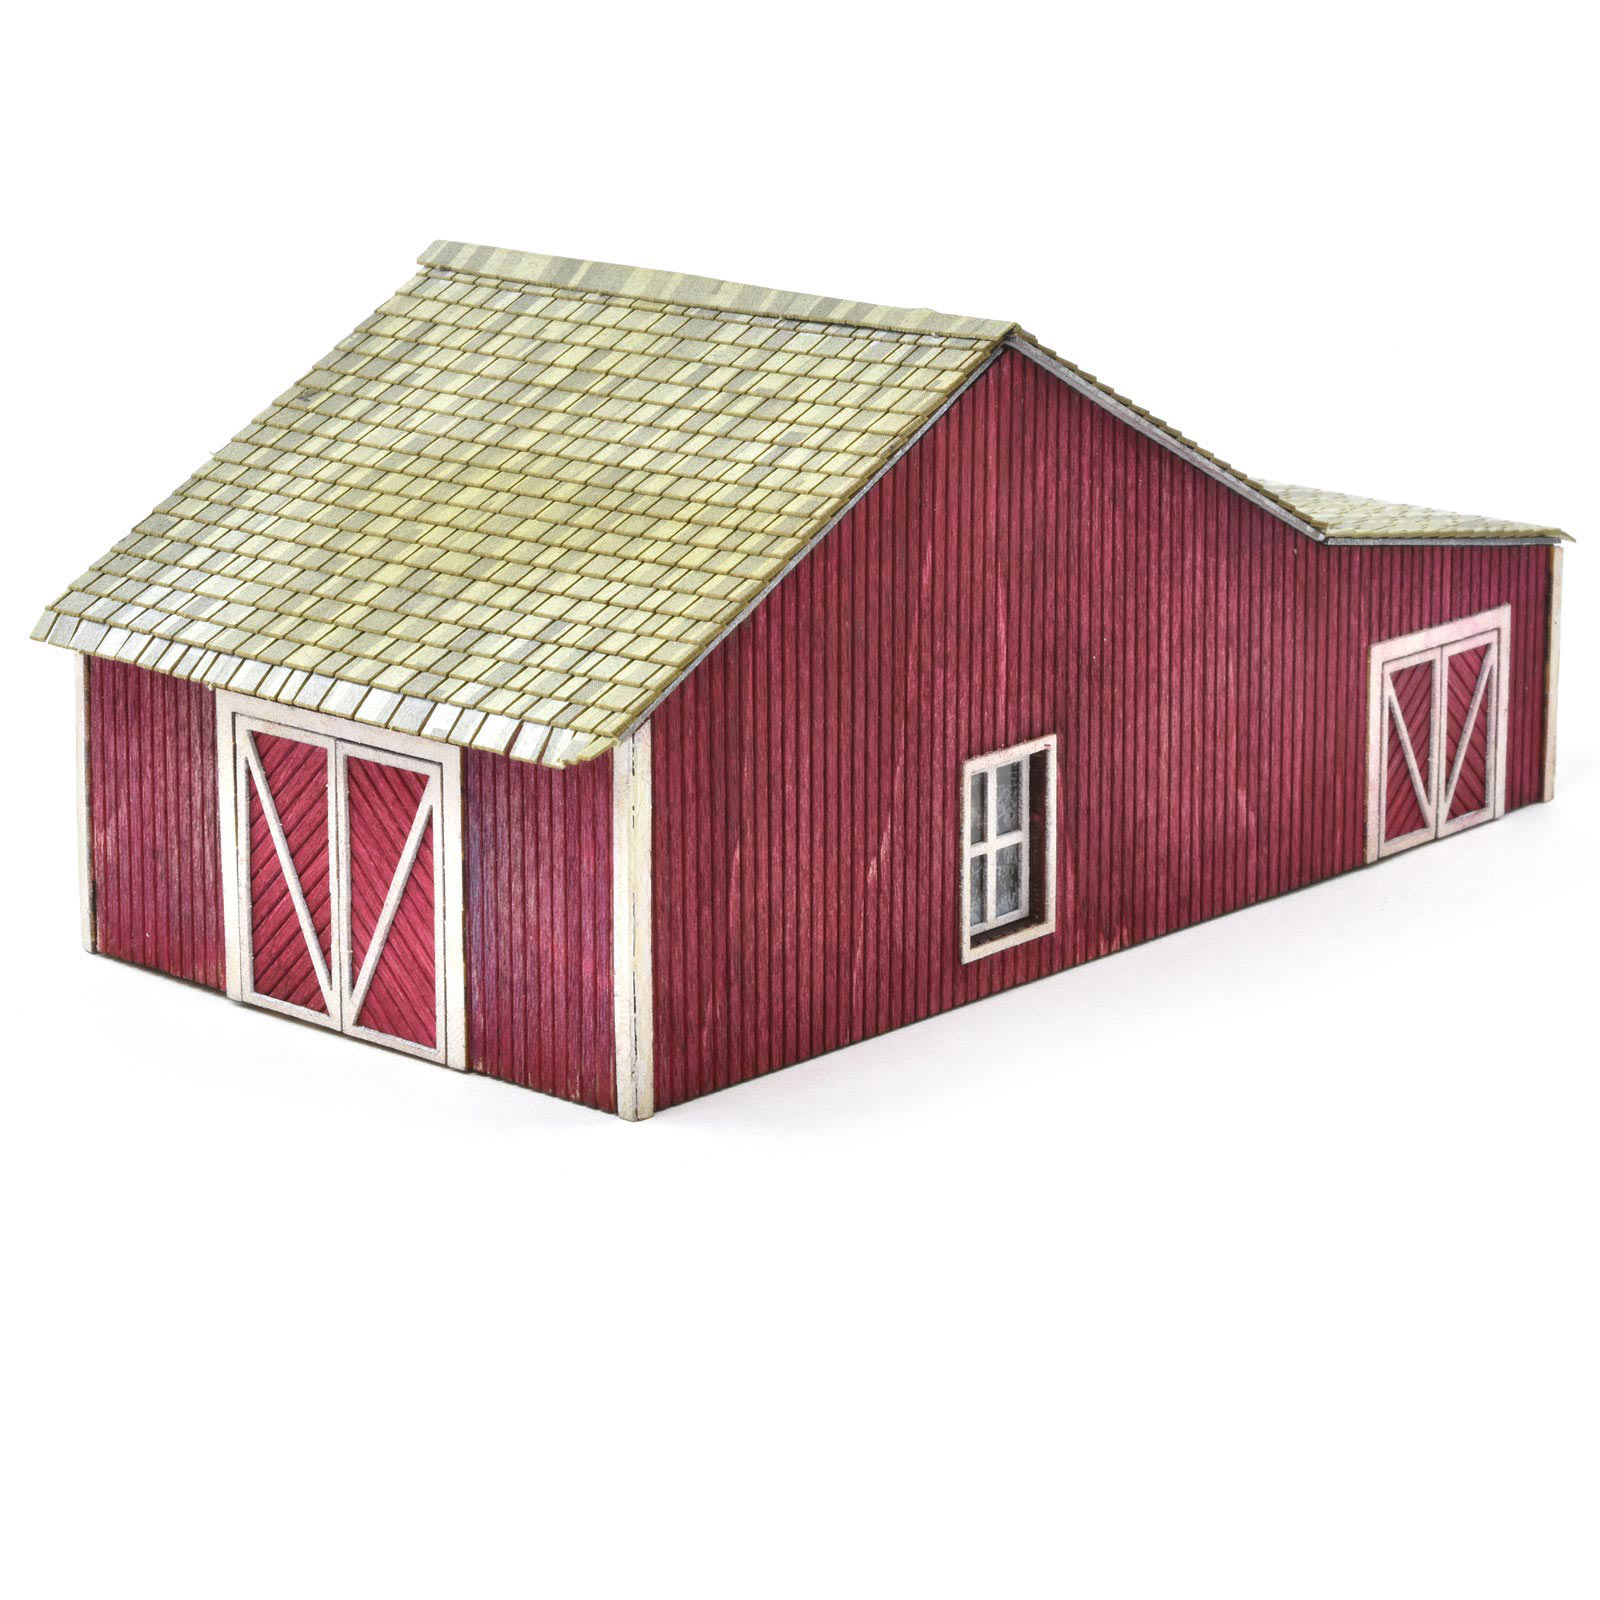 HO scale Horse Stable2